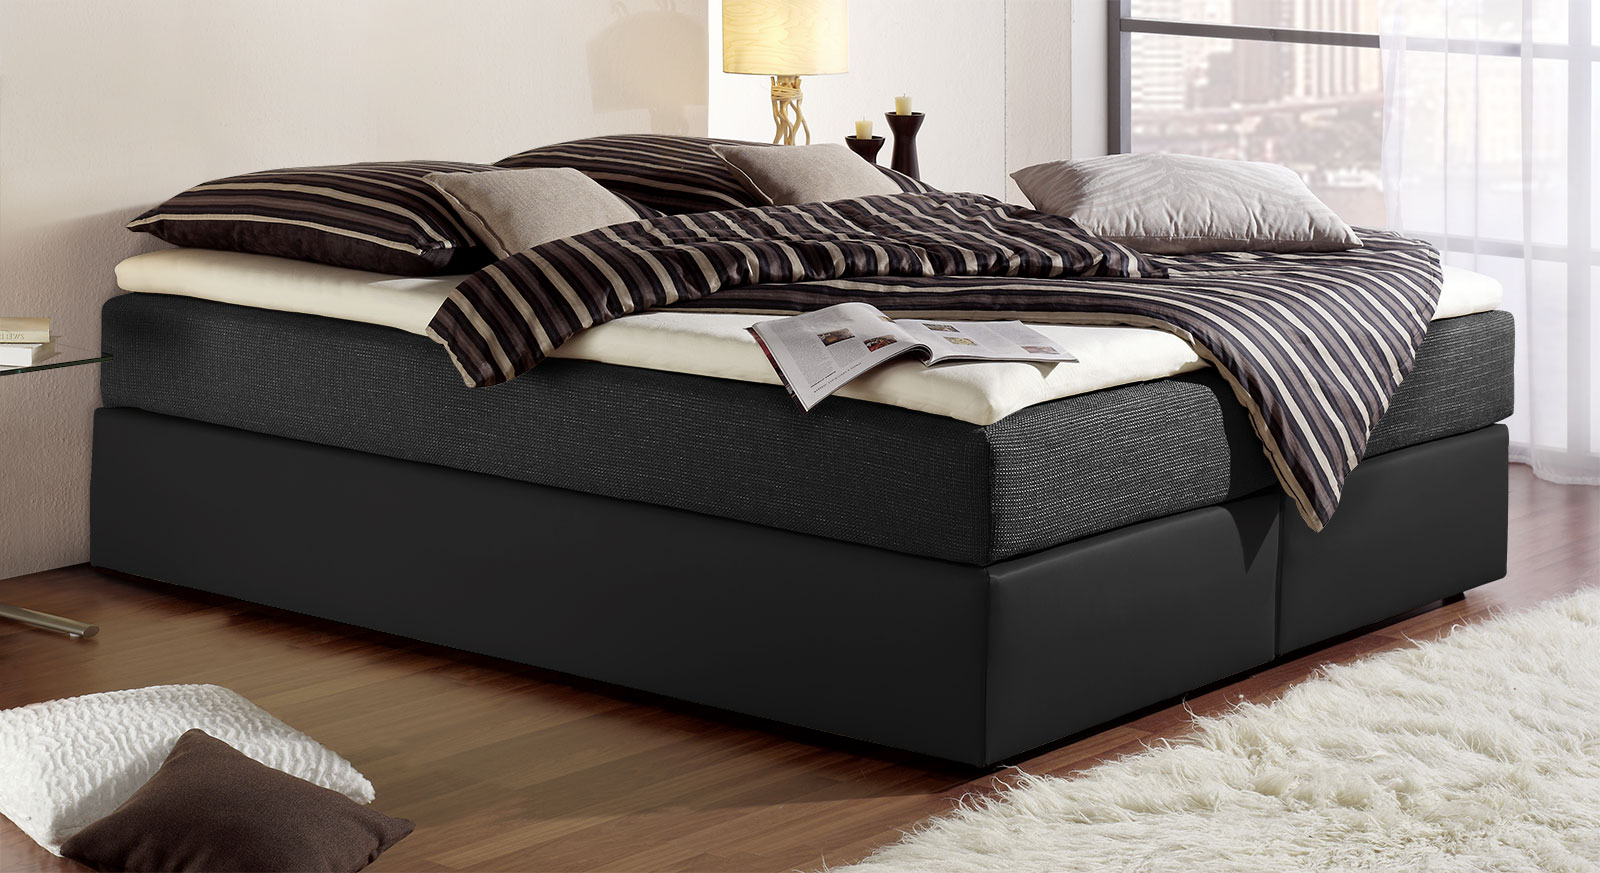 boxspring betten ohne kopfteil boxspring betten ohne. Black Bedroom Furniture Sets. Home Design Ideas